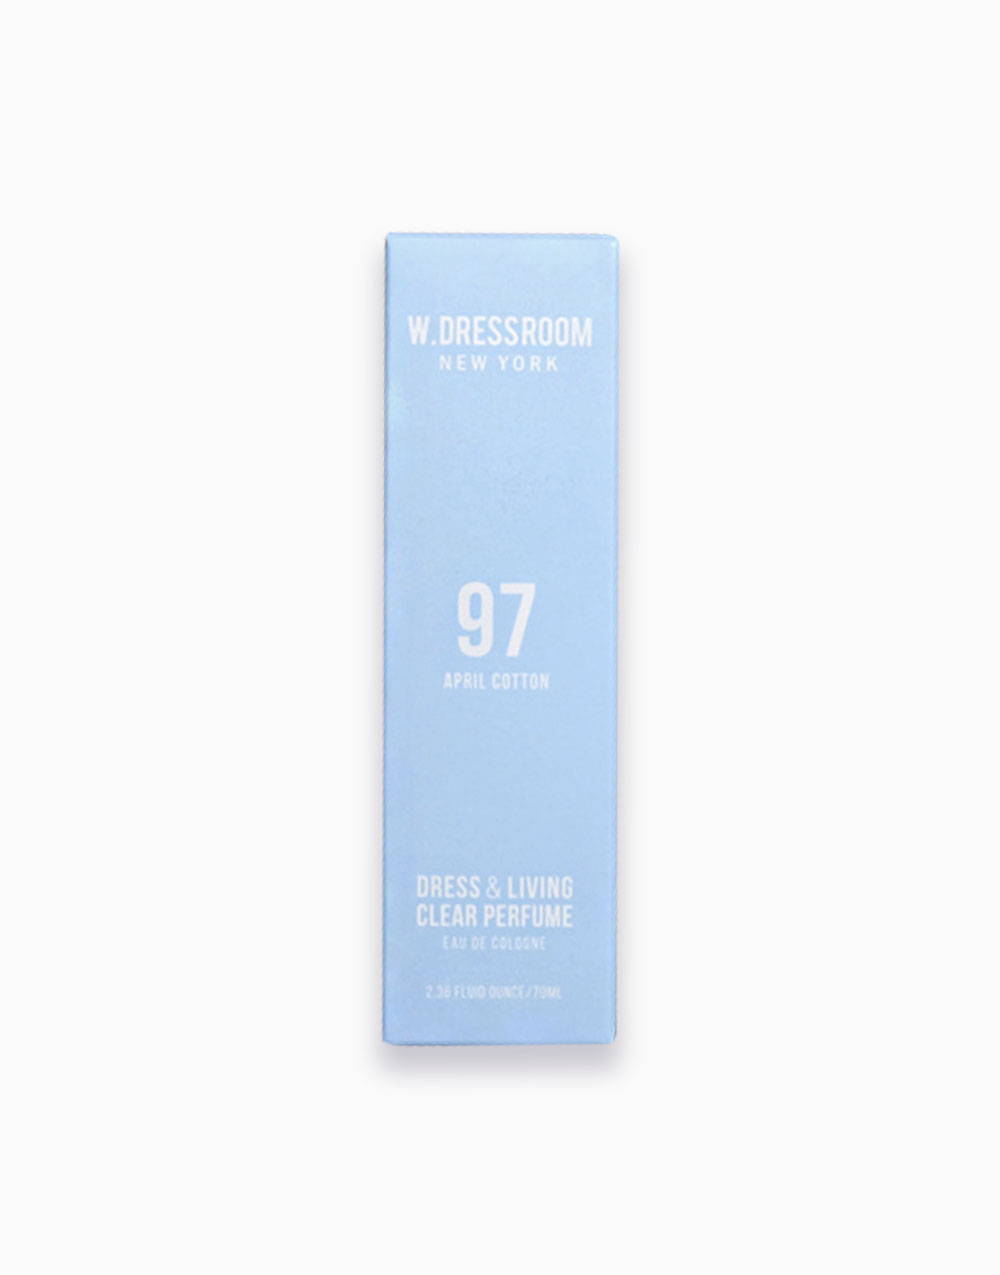 Dress & Living Clear Perfume No. 97 (April Cotton) by W.Dressroom